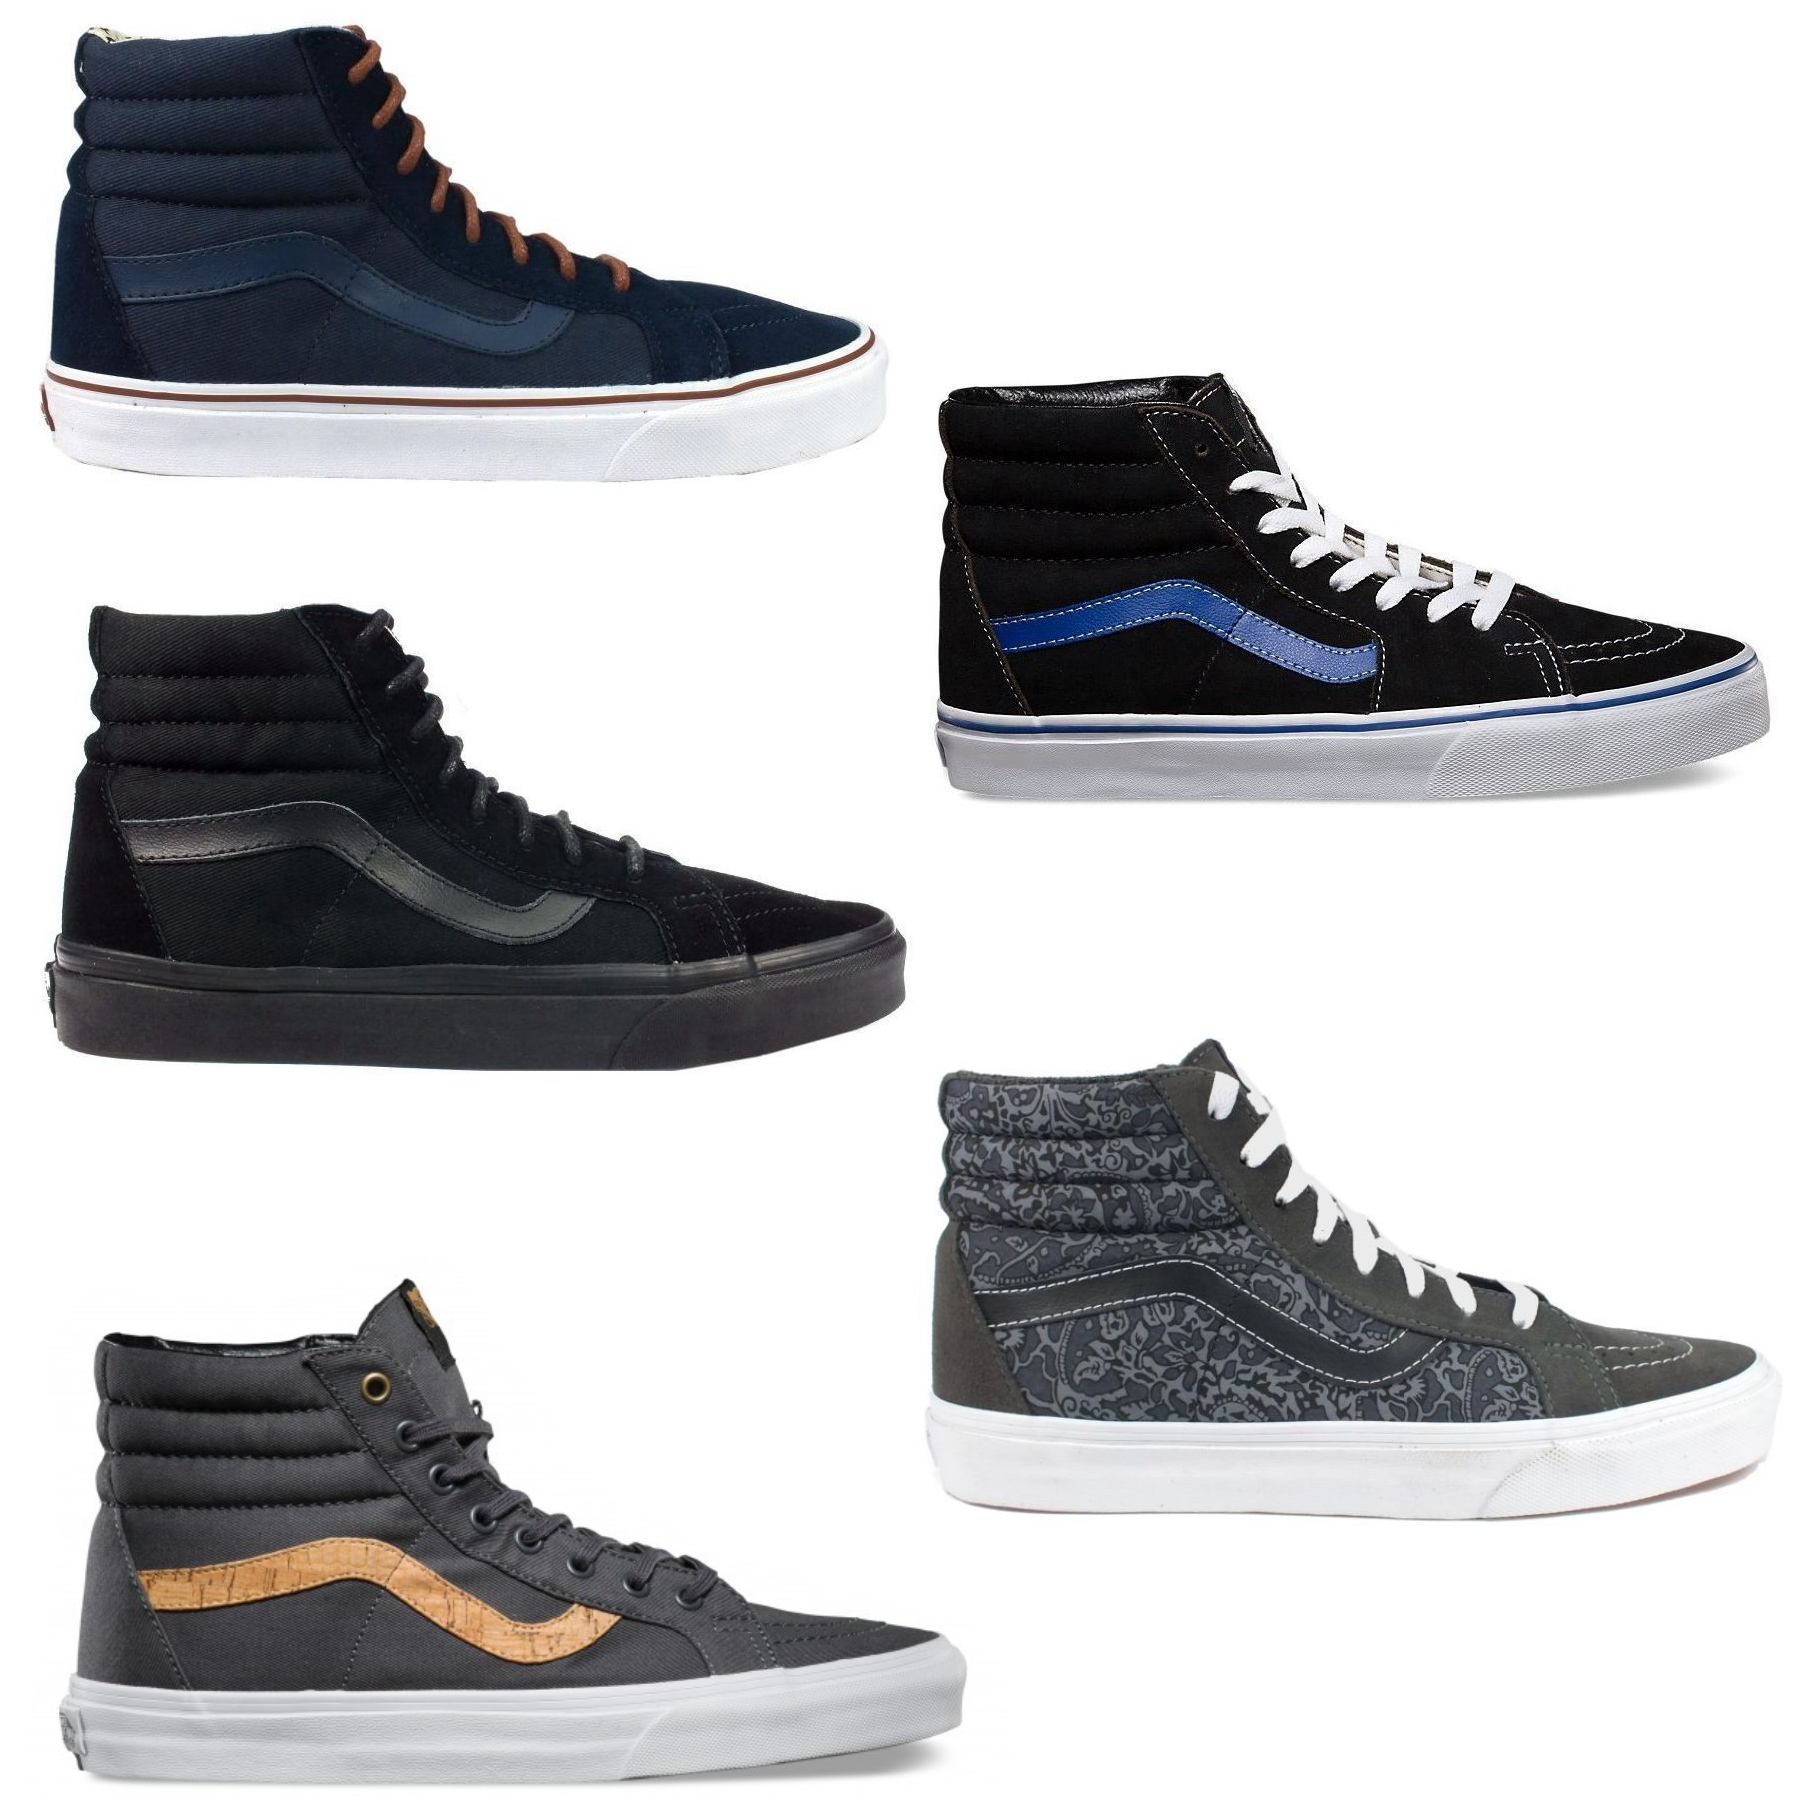 vans sk8 hi reissue schuhe sneaker turnschuhe high top. Black Bedroom Furniture Sets. Home Design Ideas